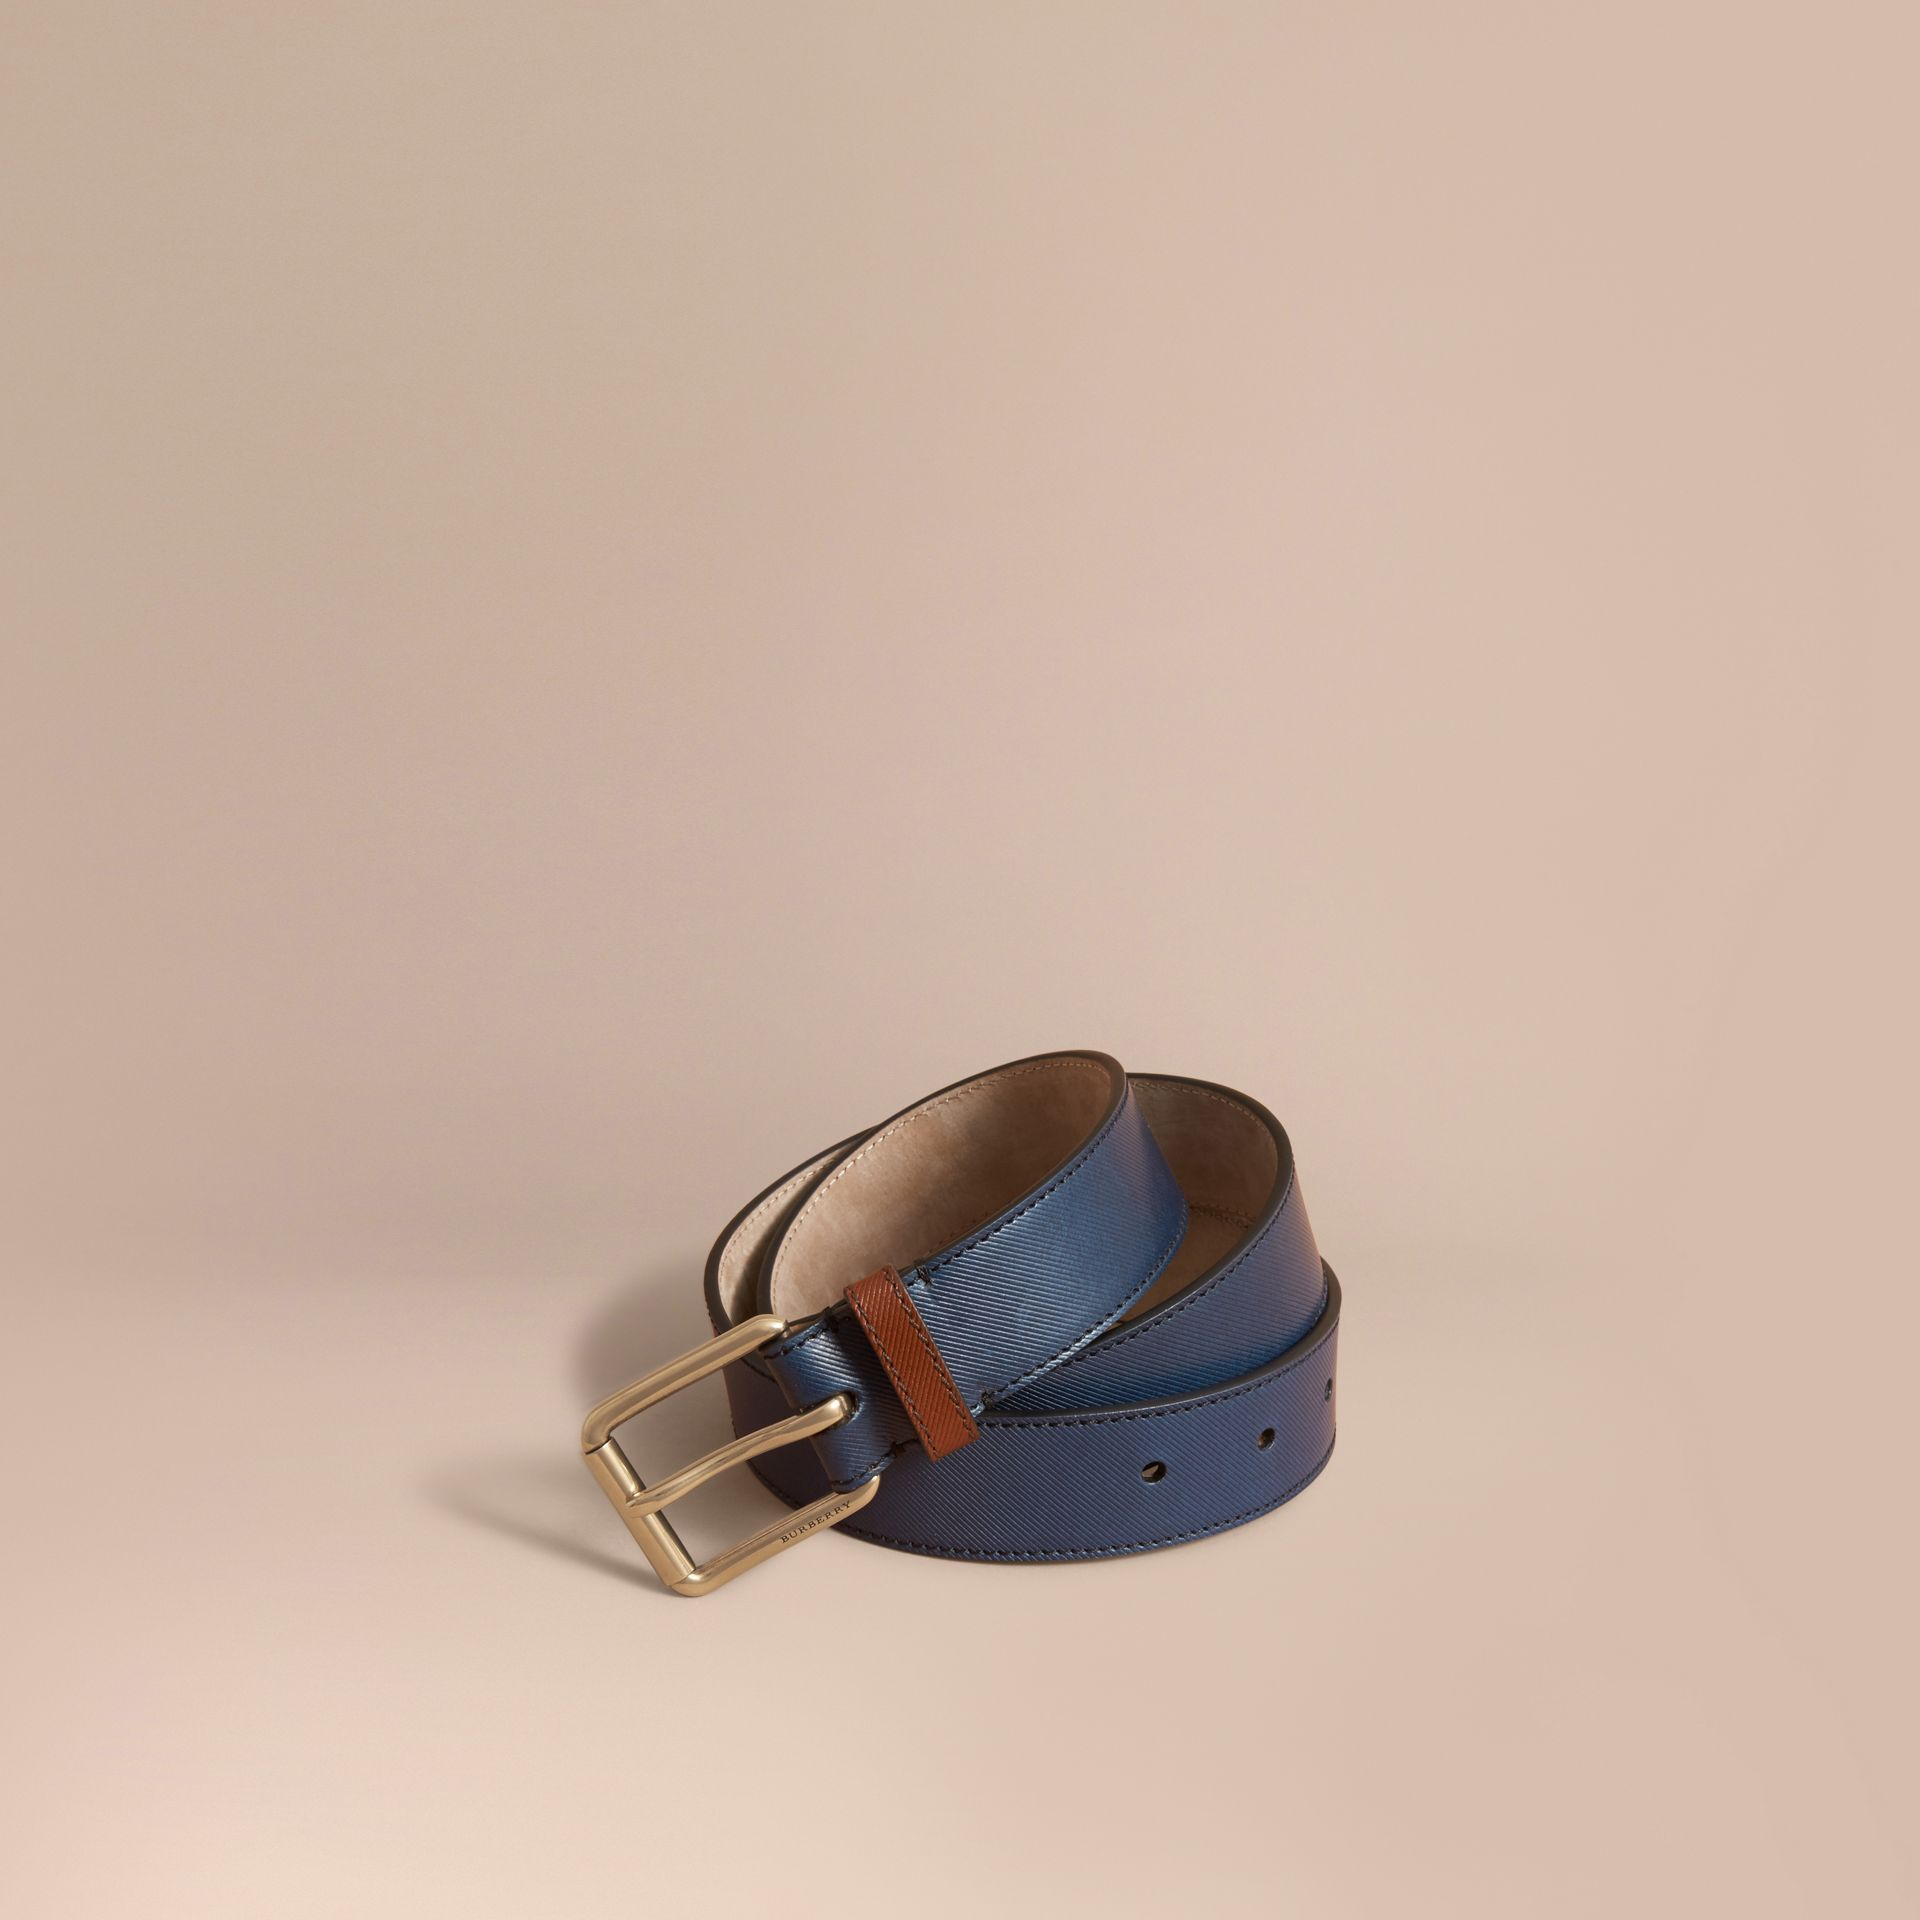 Two-tone Trench Leather Belt in Dark Navy - Men | Burberry Australia - gallery image 1